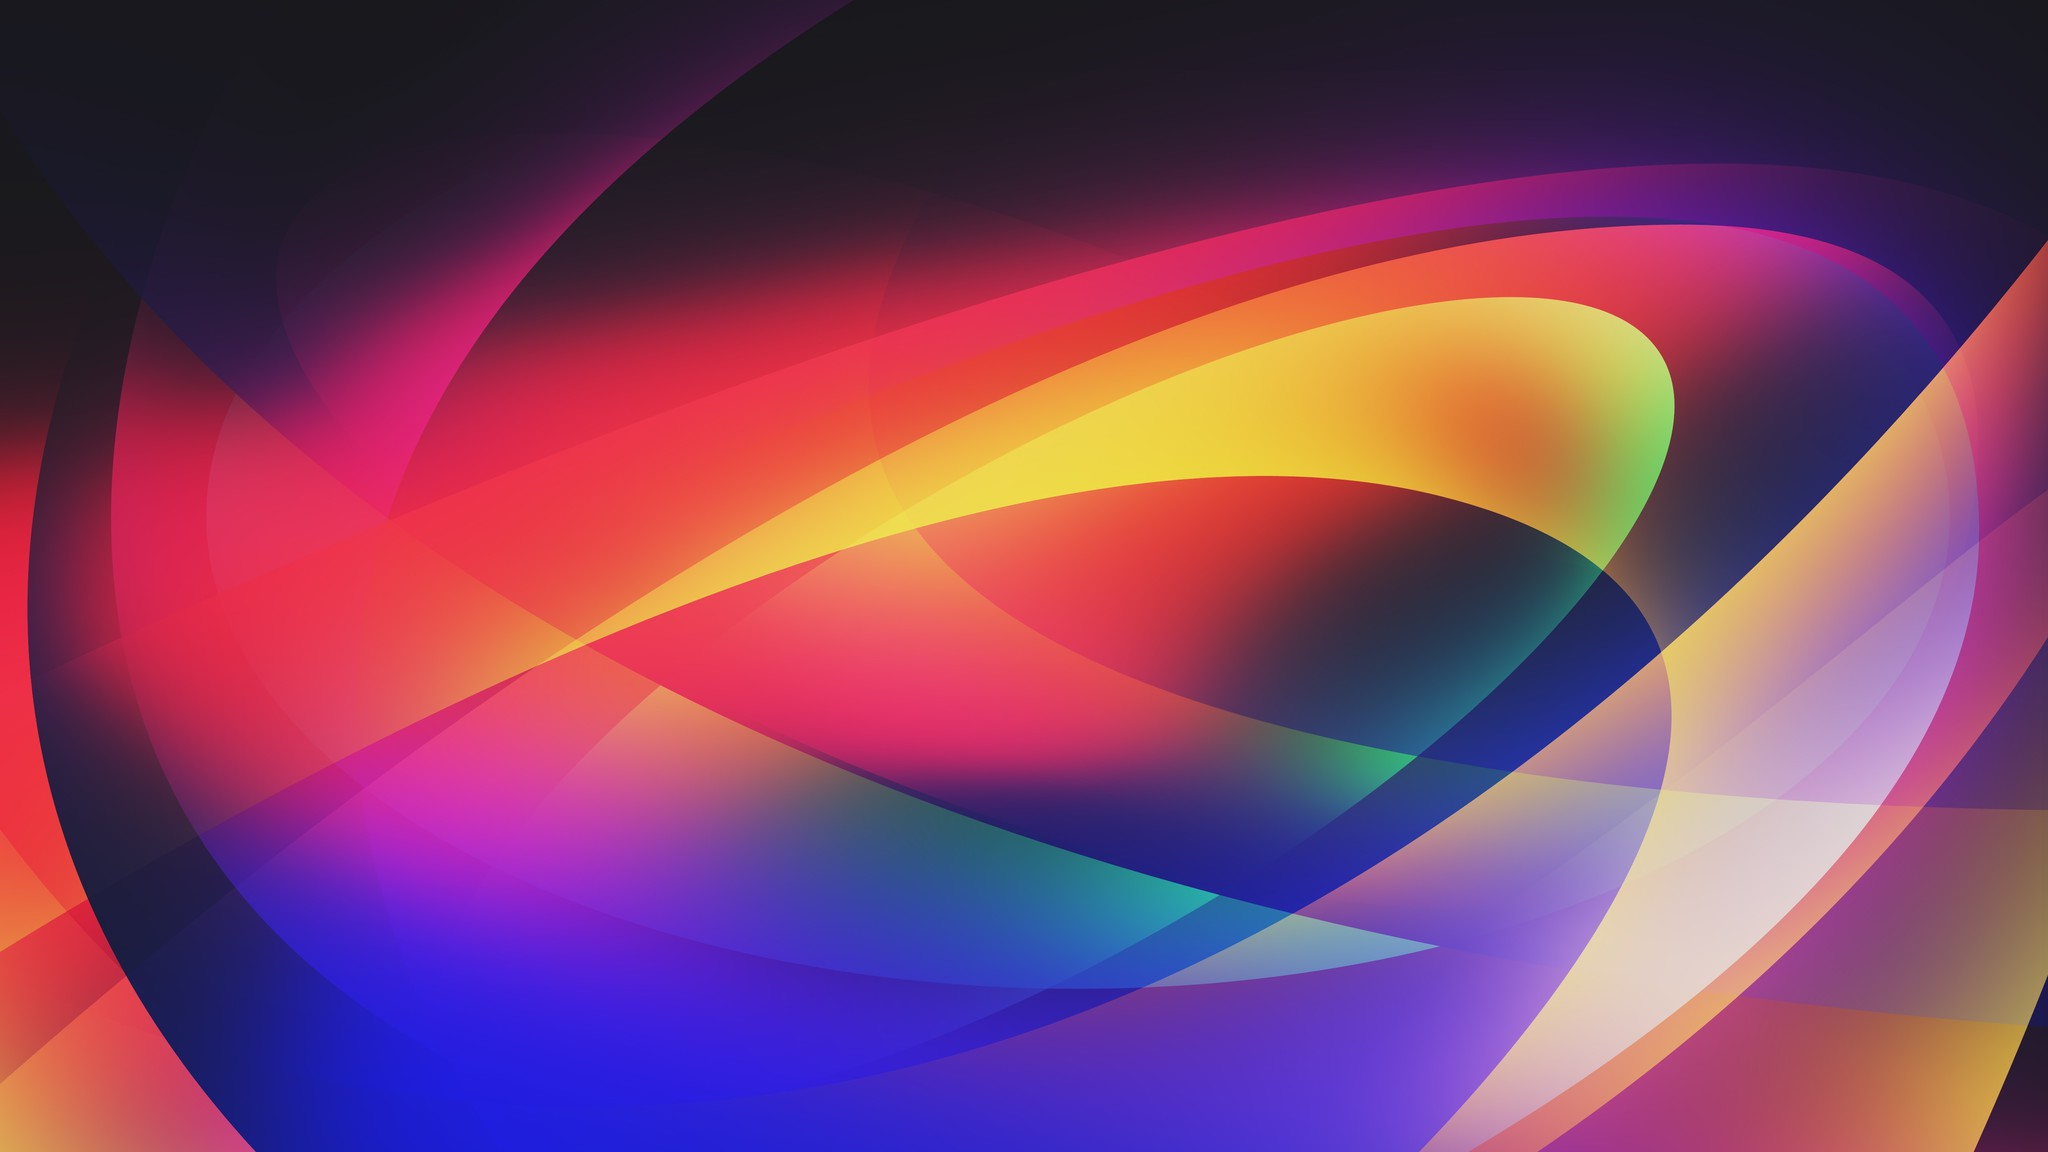 abstract colors wallpaper allwallpaperin 11122 pc en